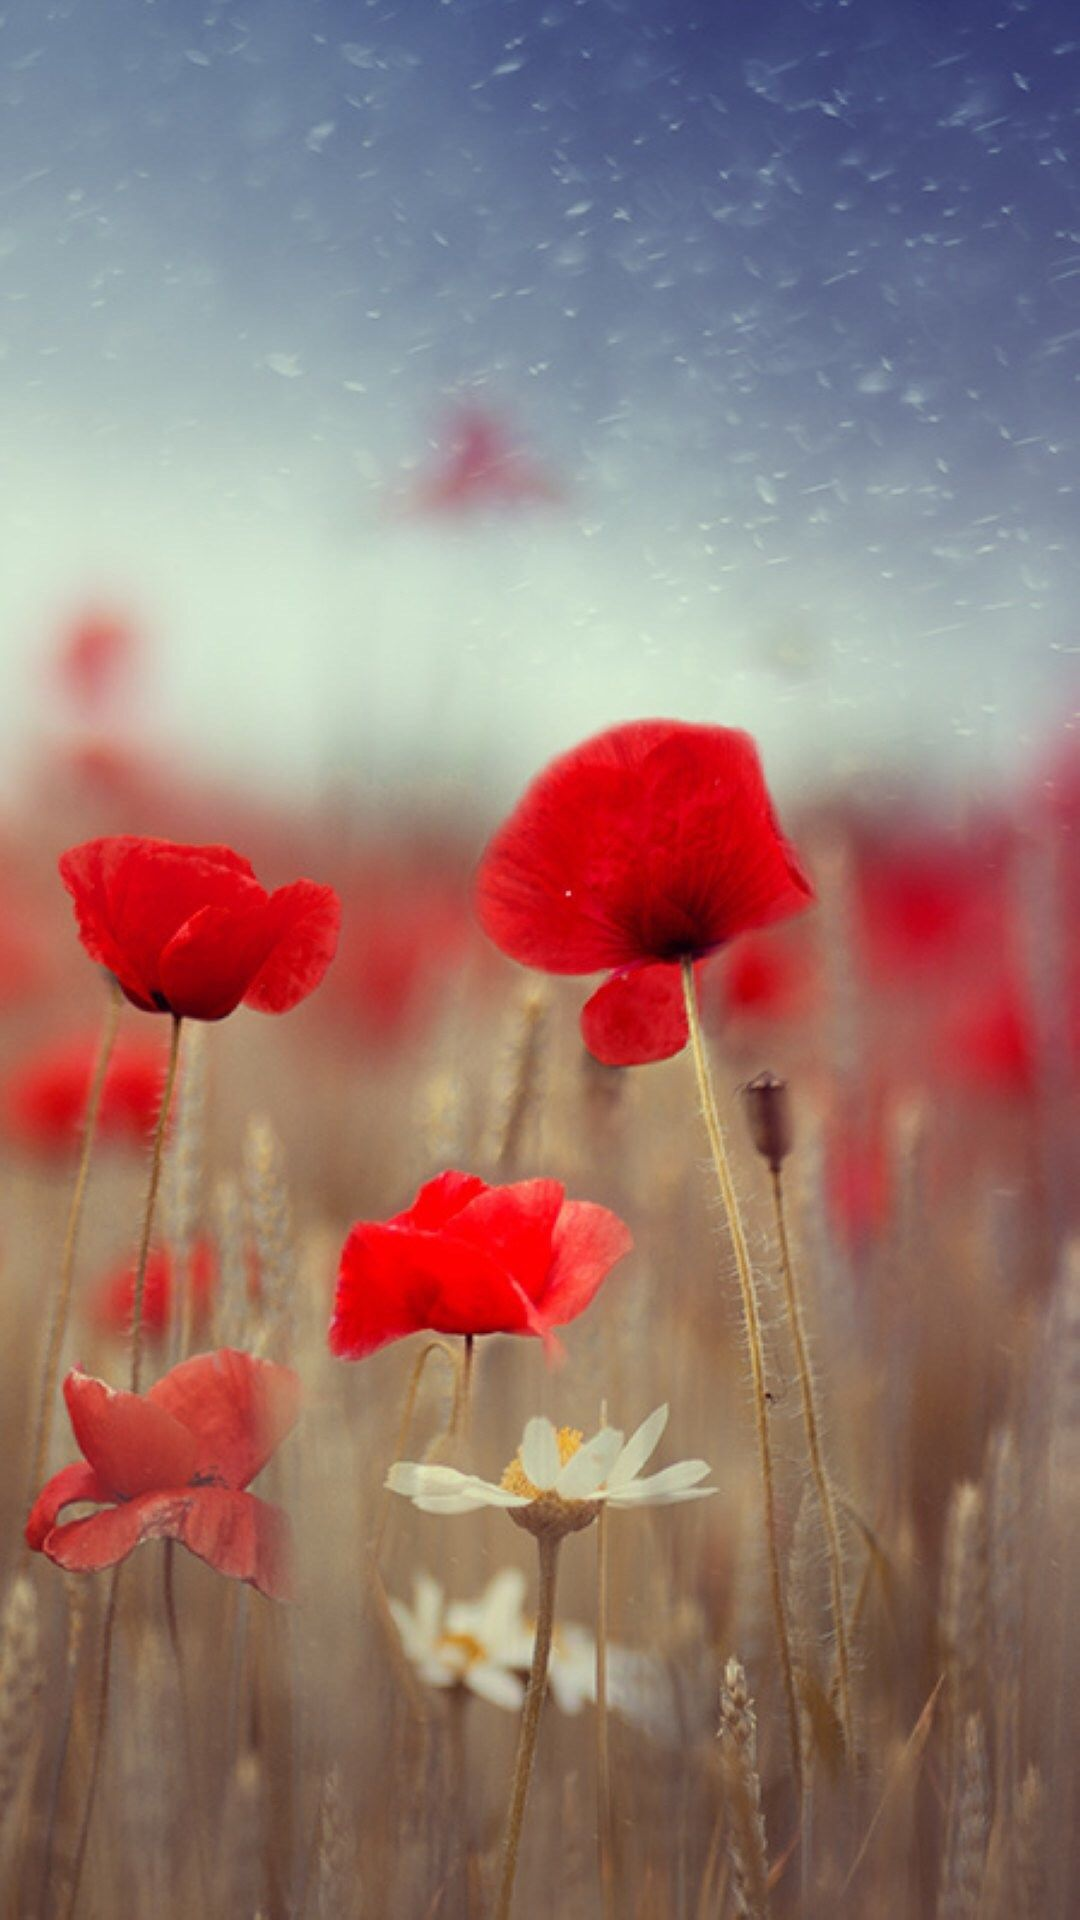 Fantasy Poppy Flower Field Plant Blur Iphone 6 Wallpaper Iphone 6 Wallpaper Backgrounds